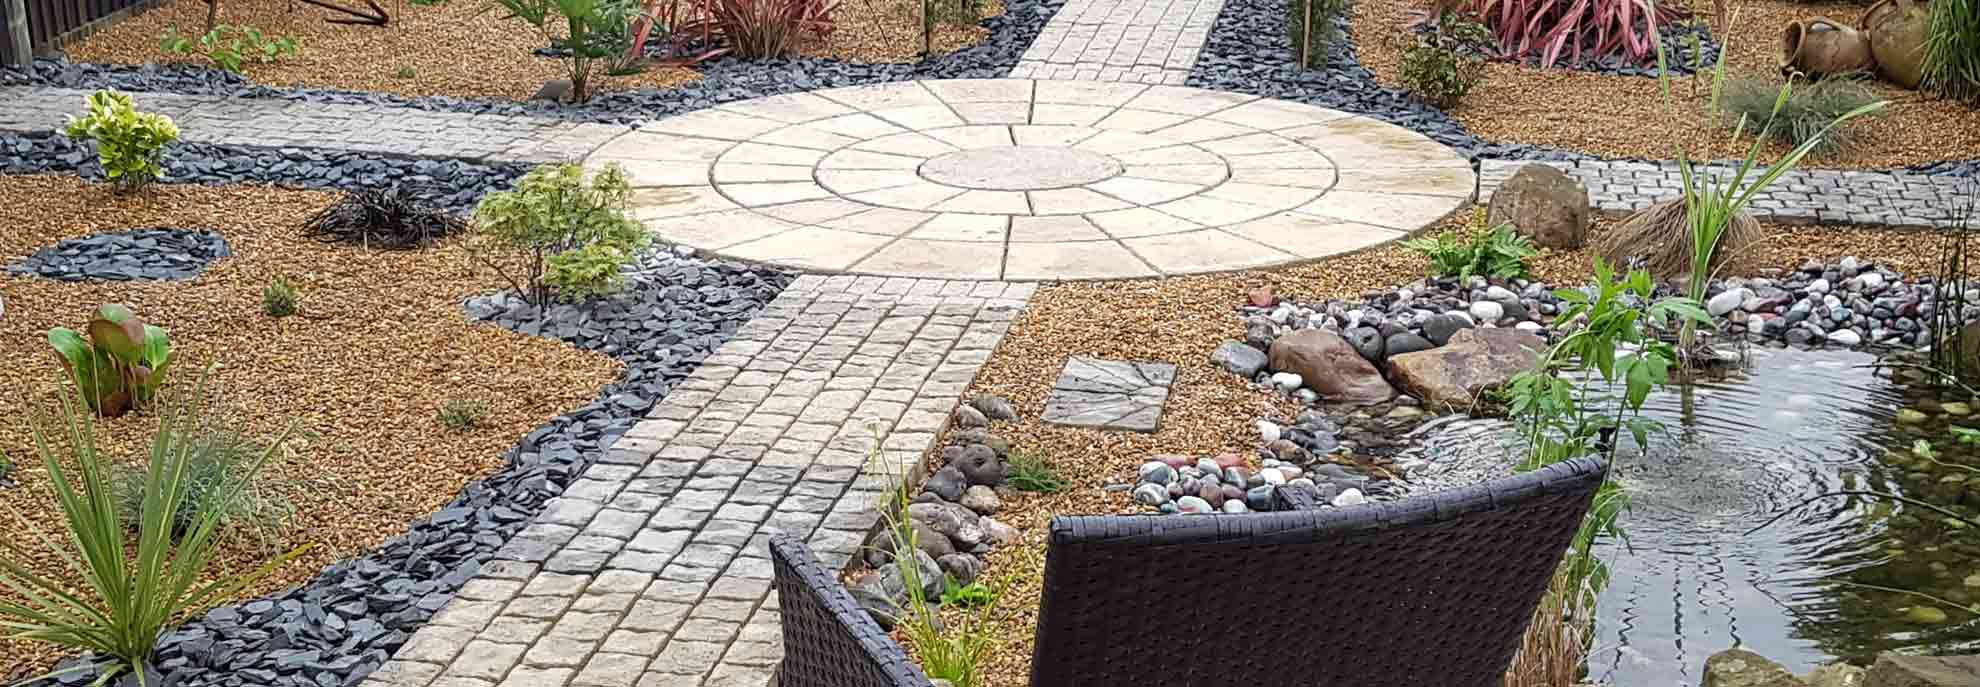 patio-and-path-fitting-cromer